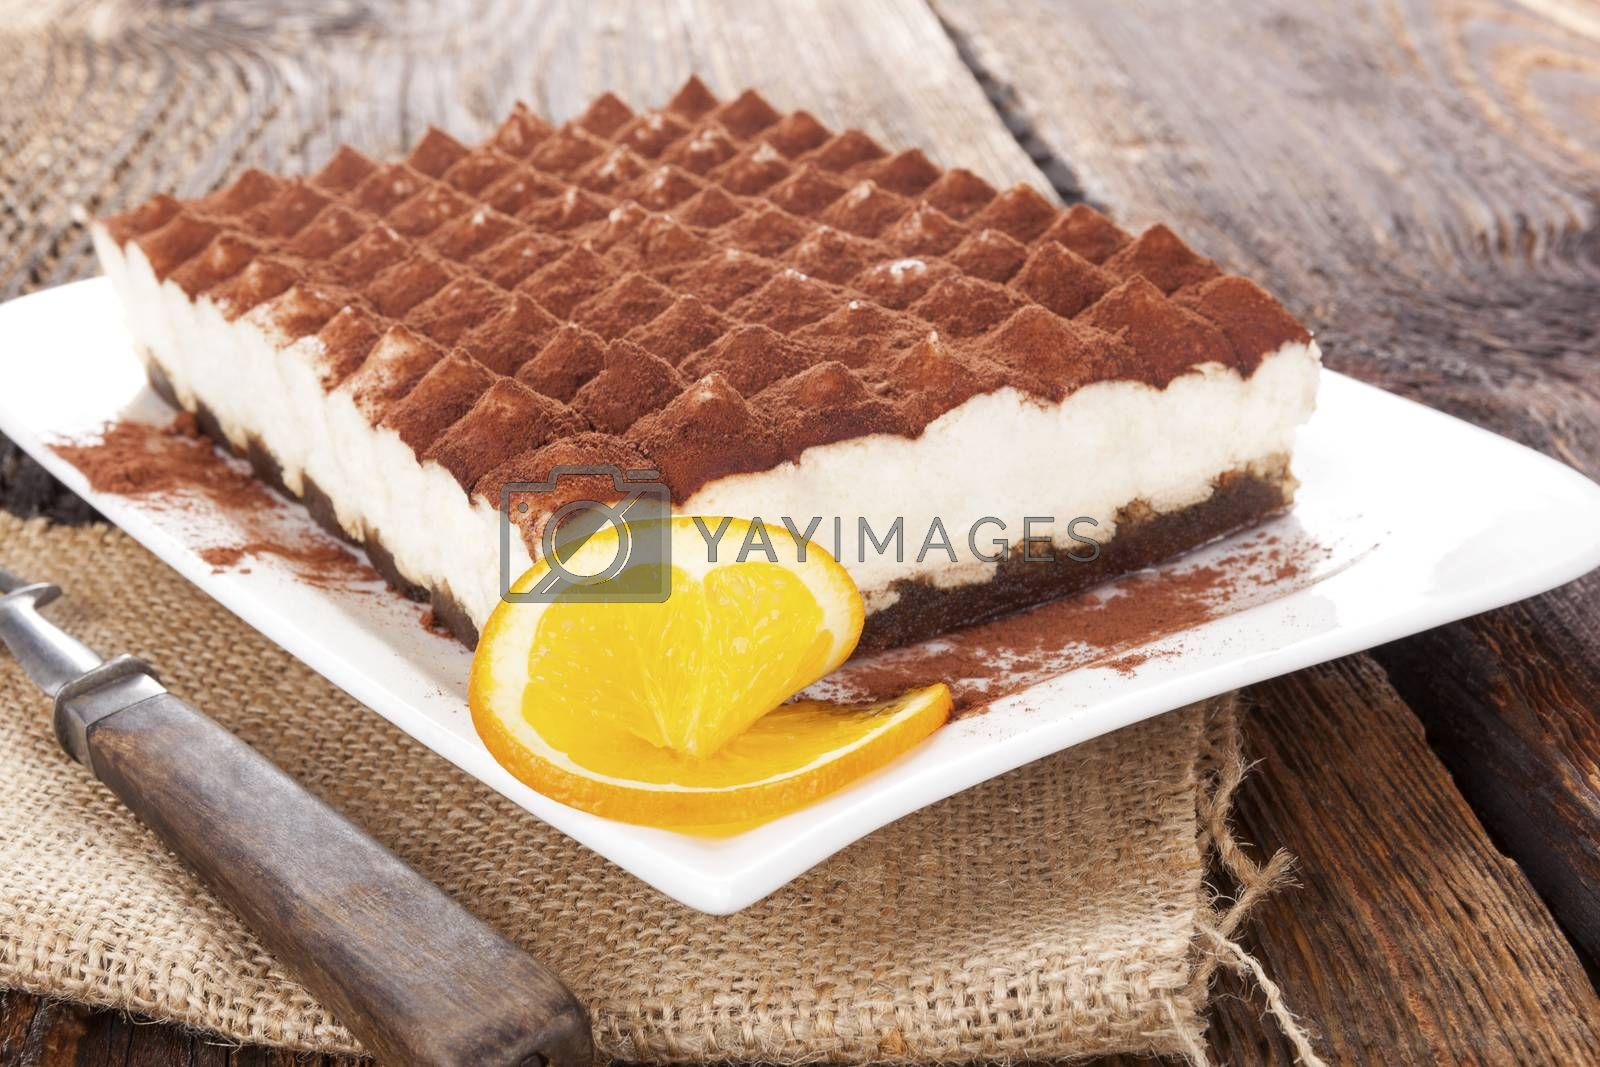 Delicious tiramisu dessert on brown wooden table. Culinary traditional sweet dessert.